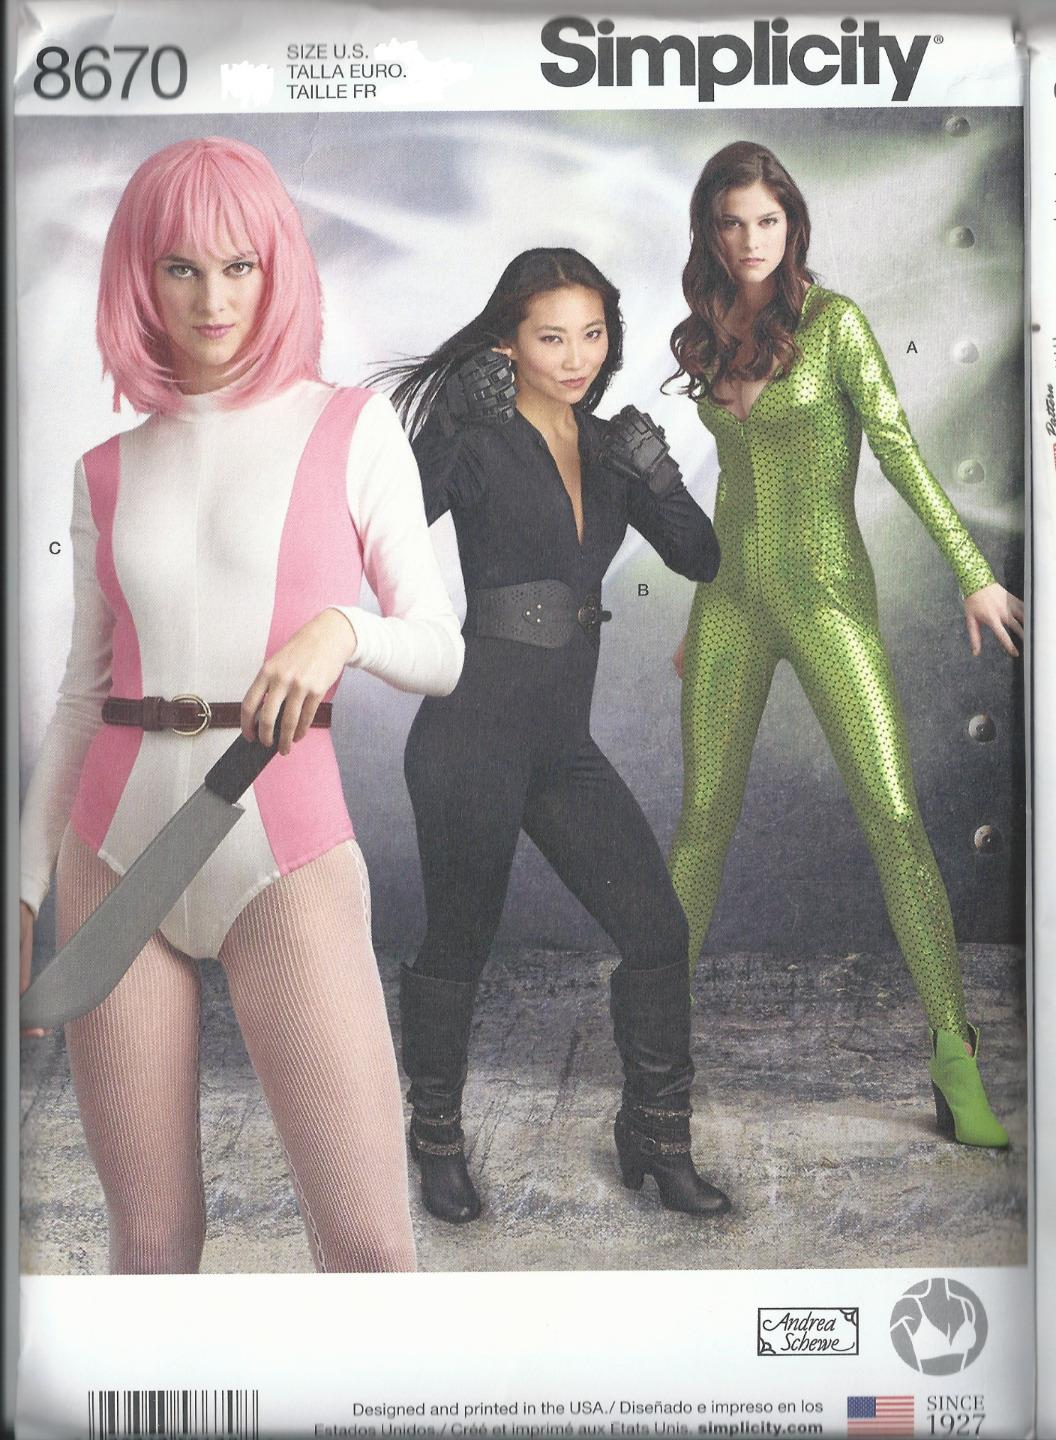 Simplicity-Sewing-Pattern-Cosplay-Costume-Misses-New-You-Pick